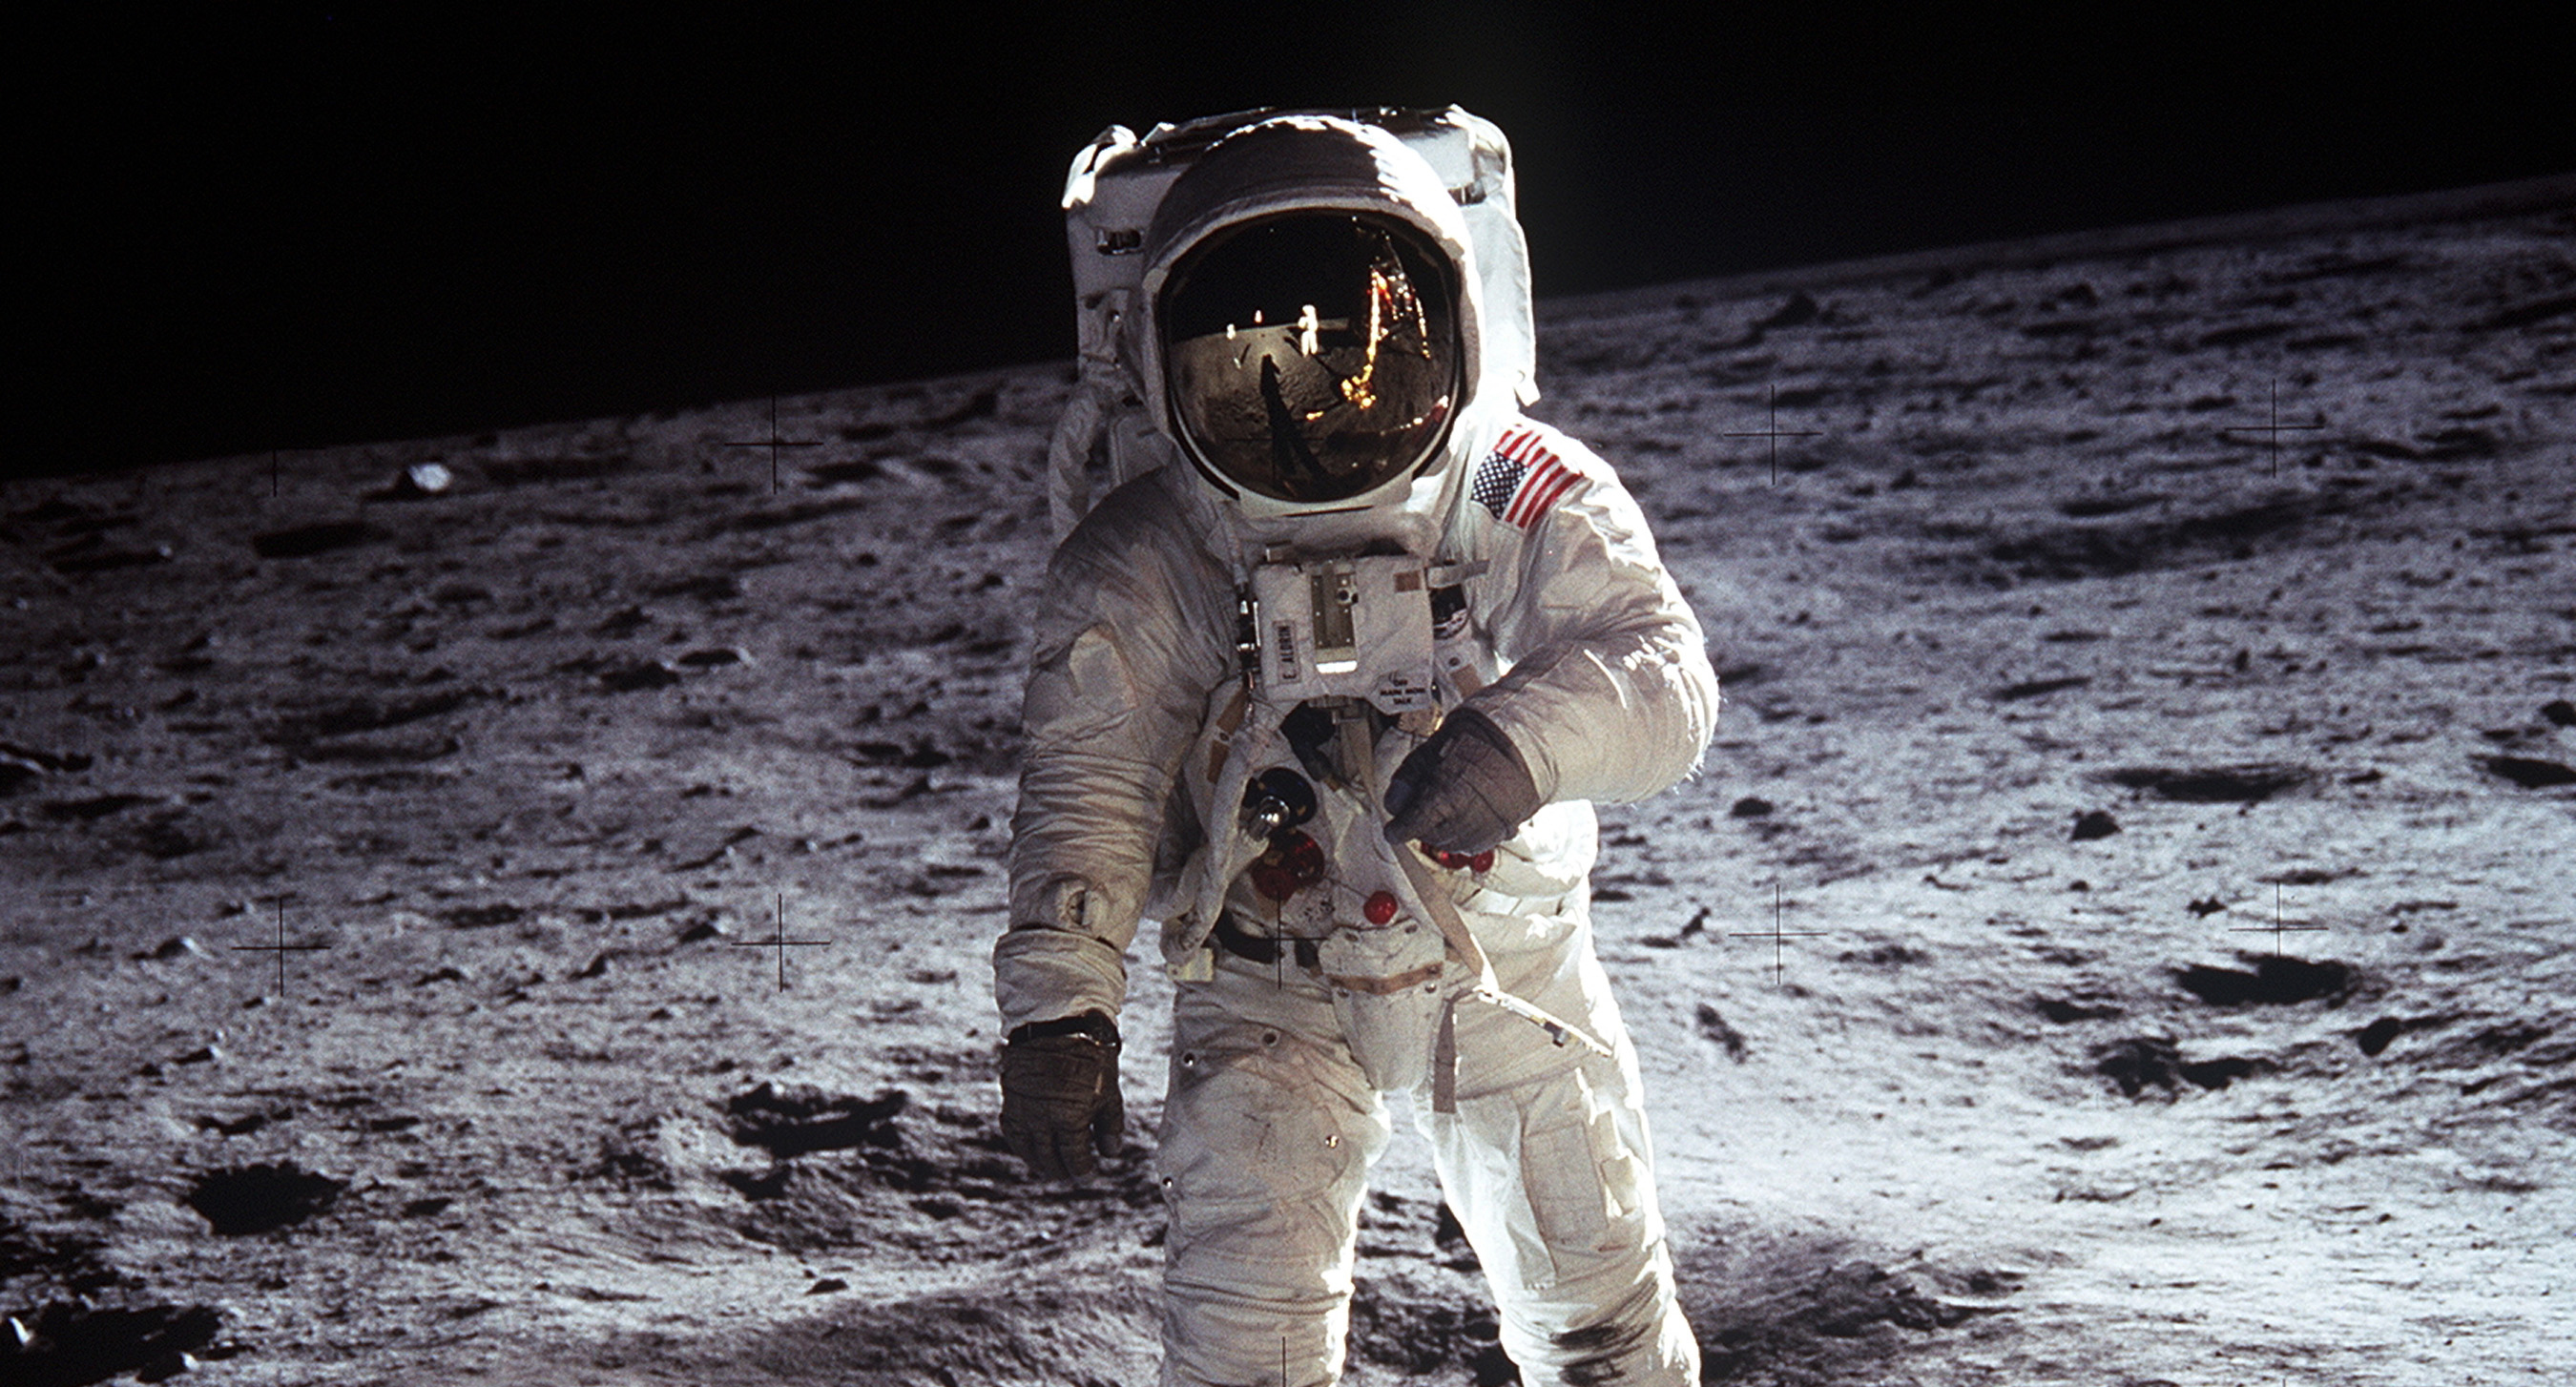 Buzz Aldrin walking on the Moon, on Apollo 11, July 20–21, 1969. <i>By NASA, via Wikimedia Commons</i>